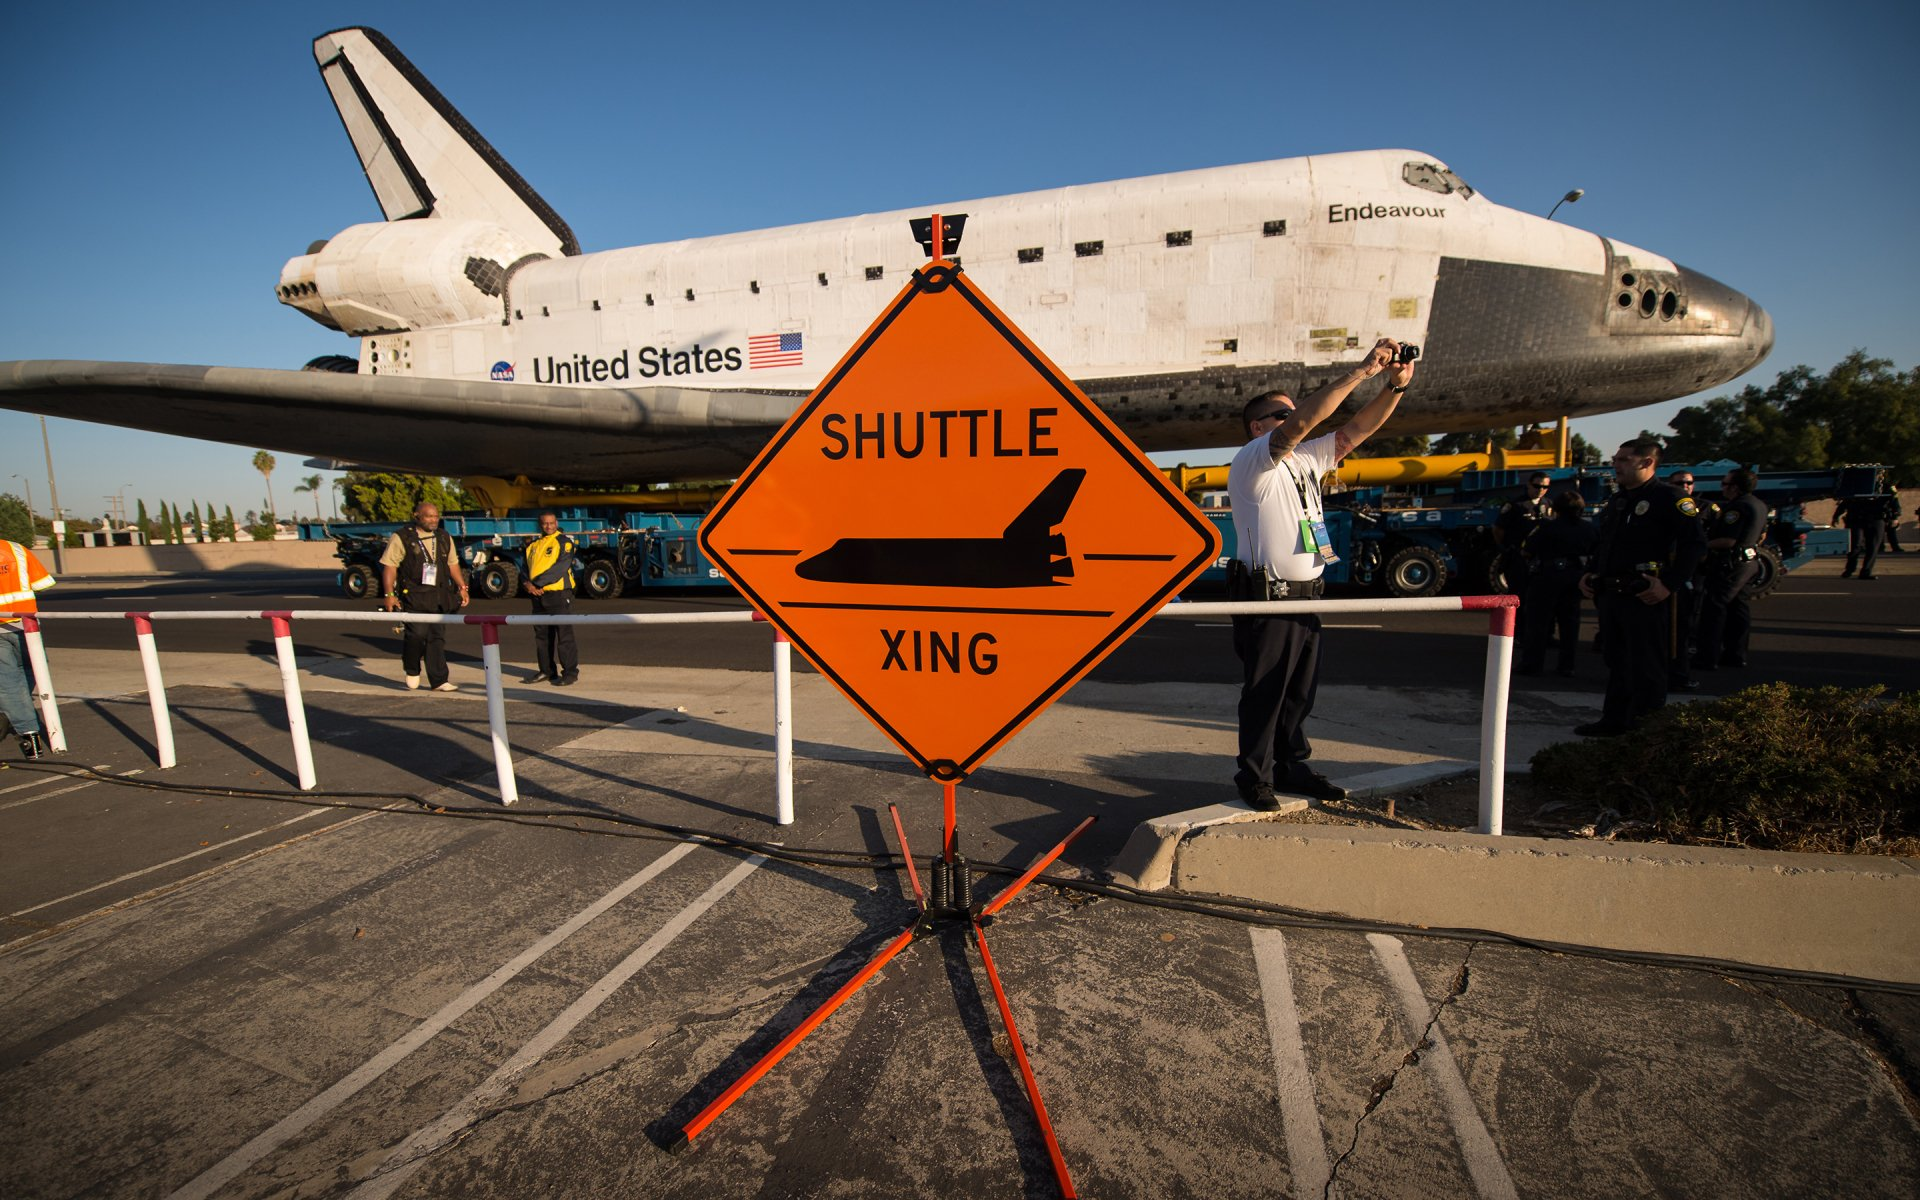 Vehicles - Space Shuttle Endeavour  Shuttle Airplane NASA Space Shuttle Wallpaper